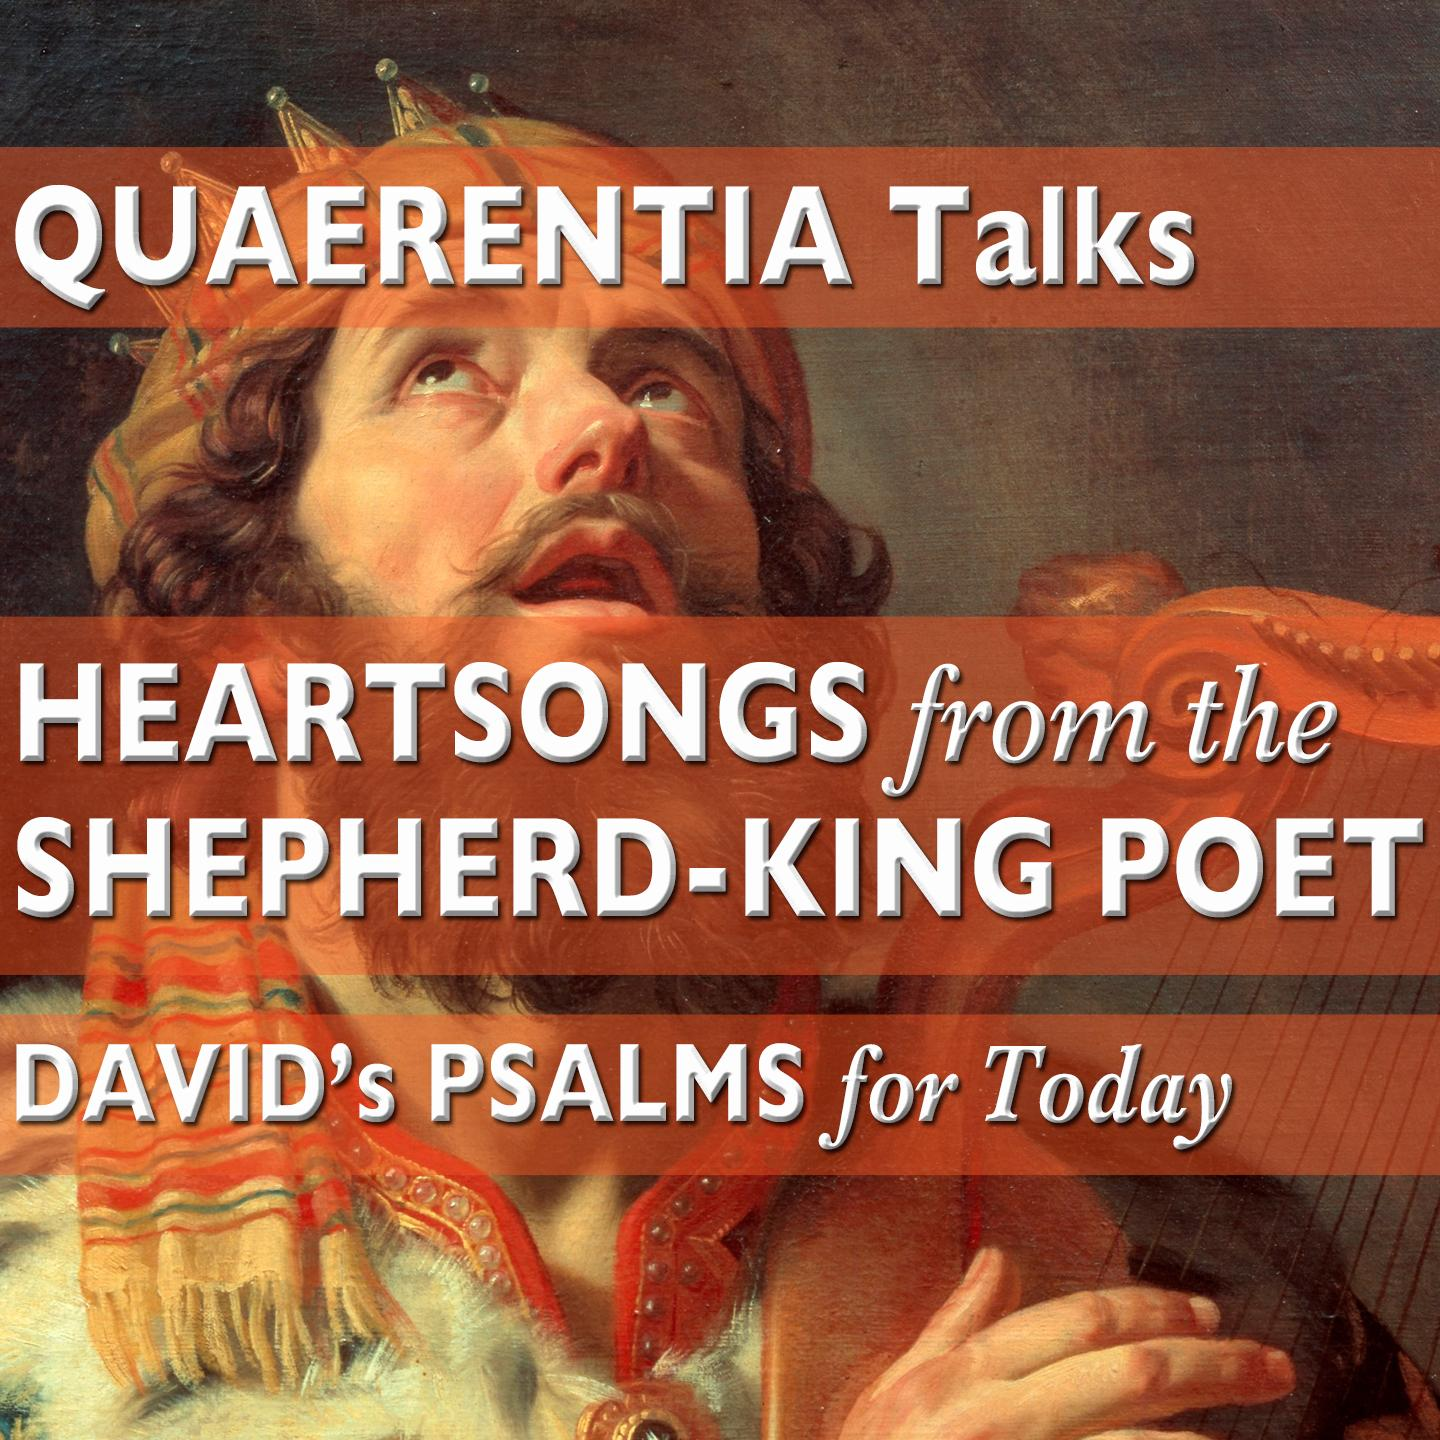 HEARTSONGS from the Shepherd-King Poet